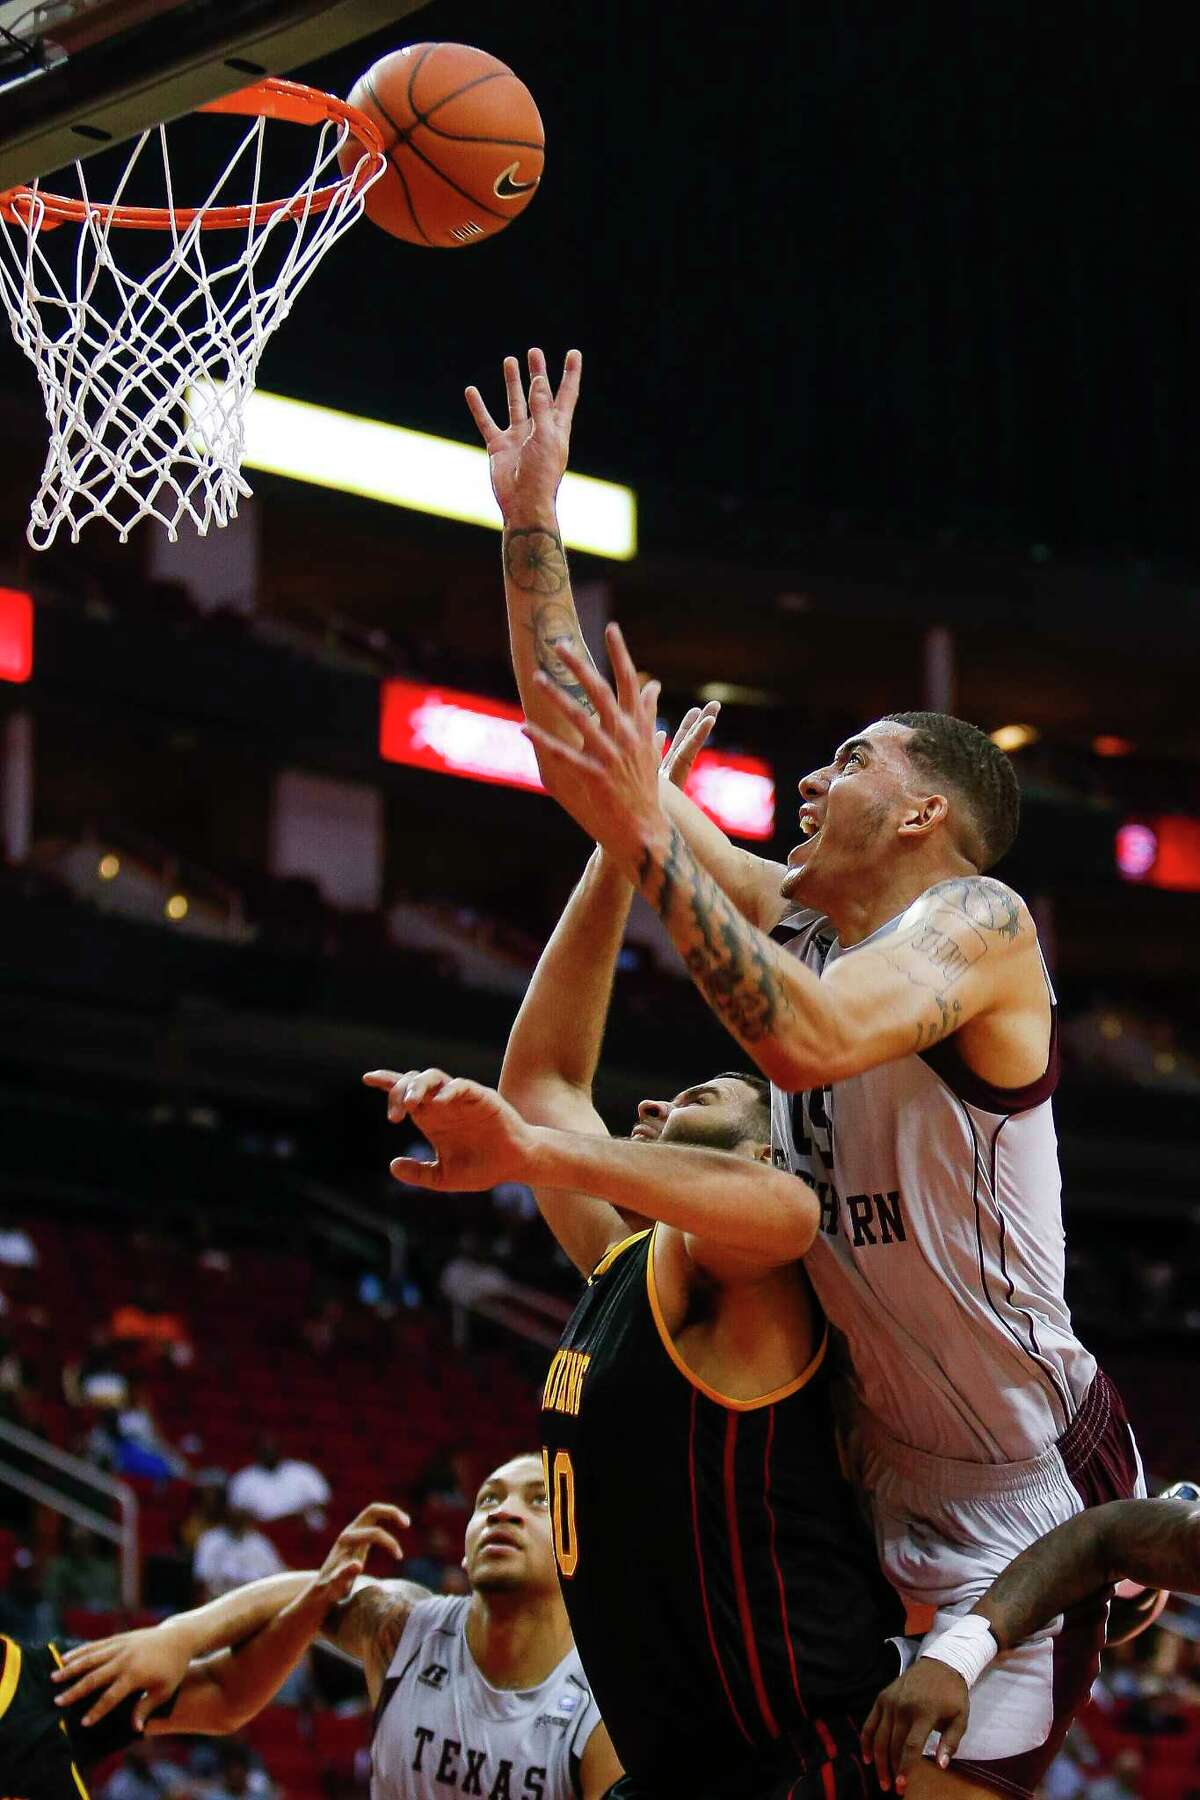 Texas Southern Tigers forward Stephan Bennett (15) puts a rebound back into the basket over Grambling State Tigers center Noah Cummings (40) as the Texas Southern Tigers take on the Grambling State Tigers during the SWAC Basketball Tournament semifinals at the Toyota Center Friday, March 10, 2017 in Houston.